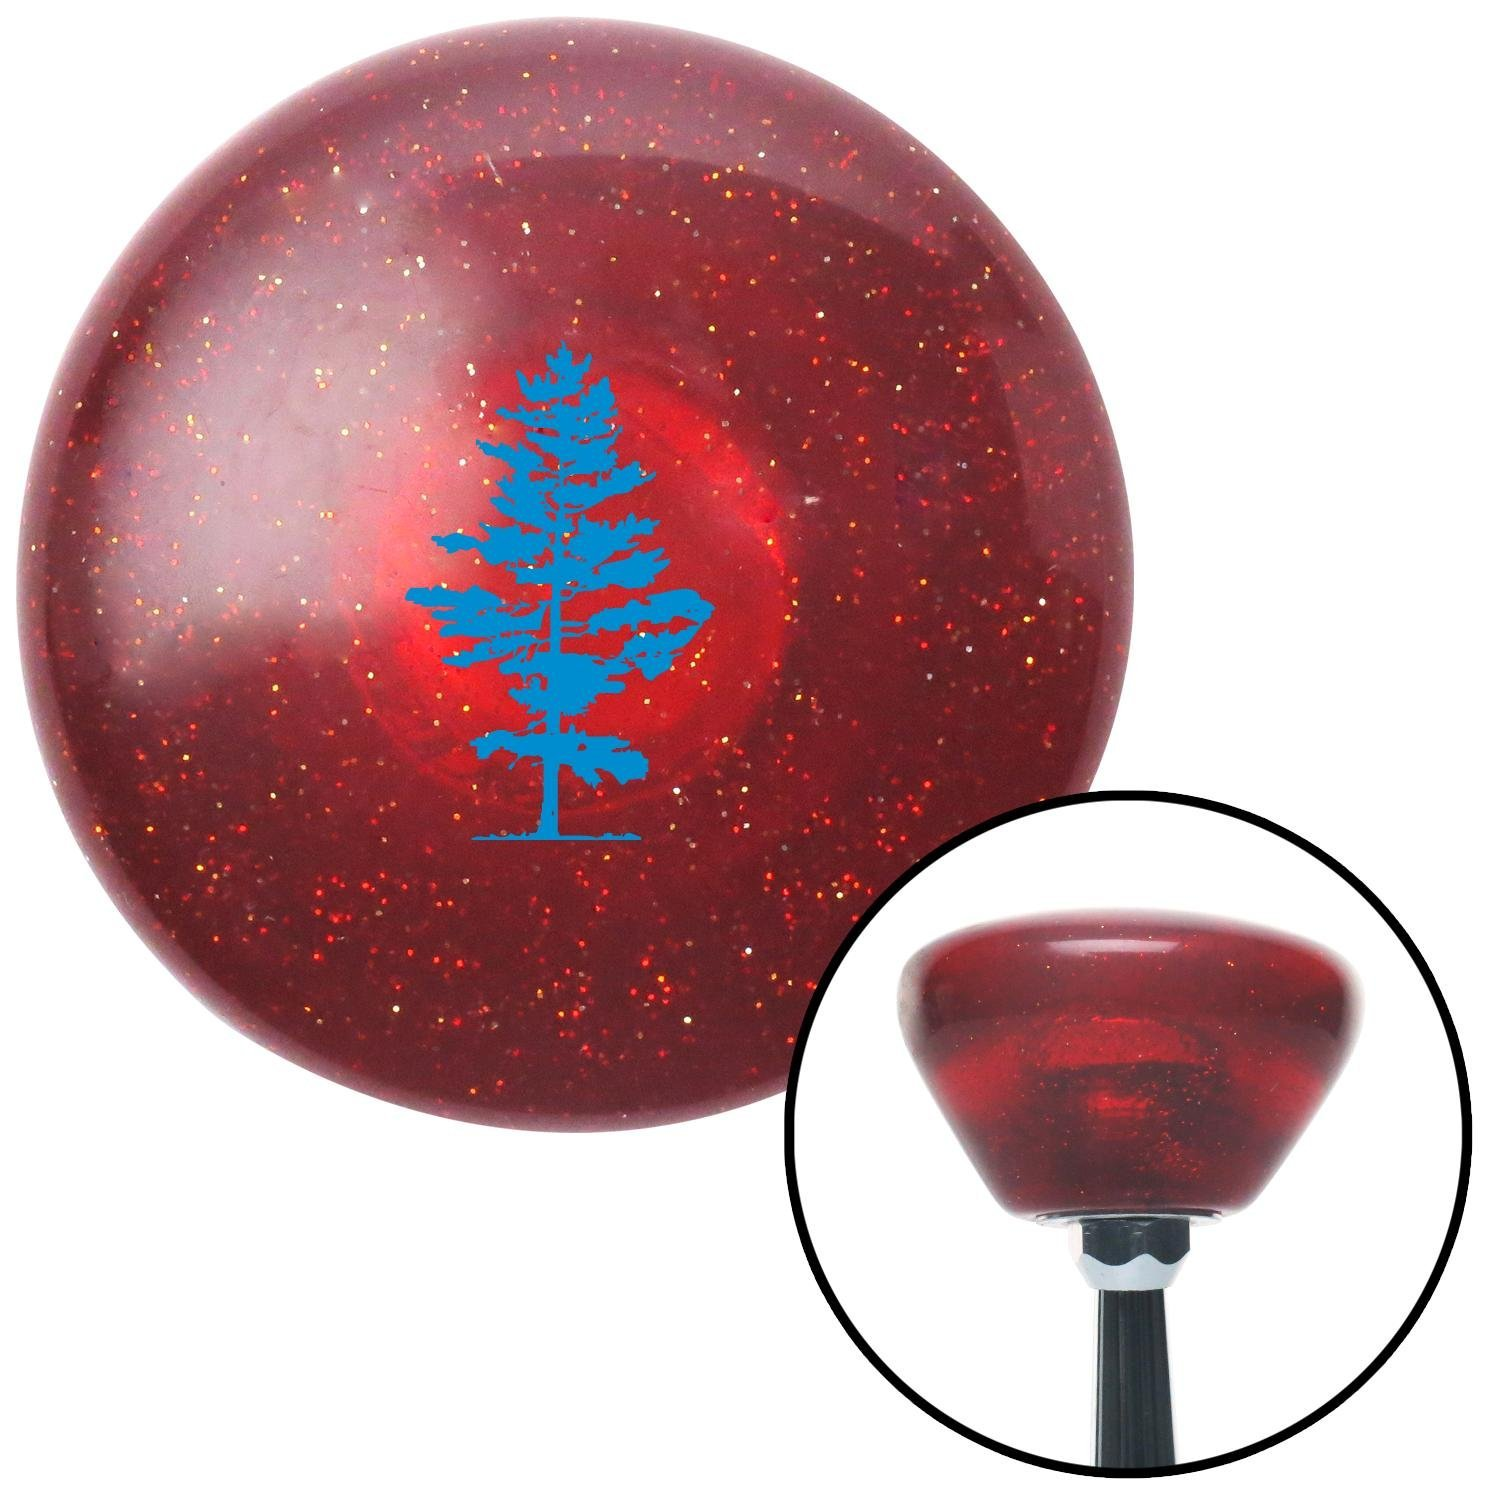 American Shifter 195506 Red Retro Metal Flake Shift Knob with M16 x 1.5 Insert Blue Evergreen Tree